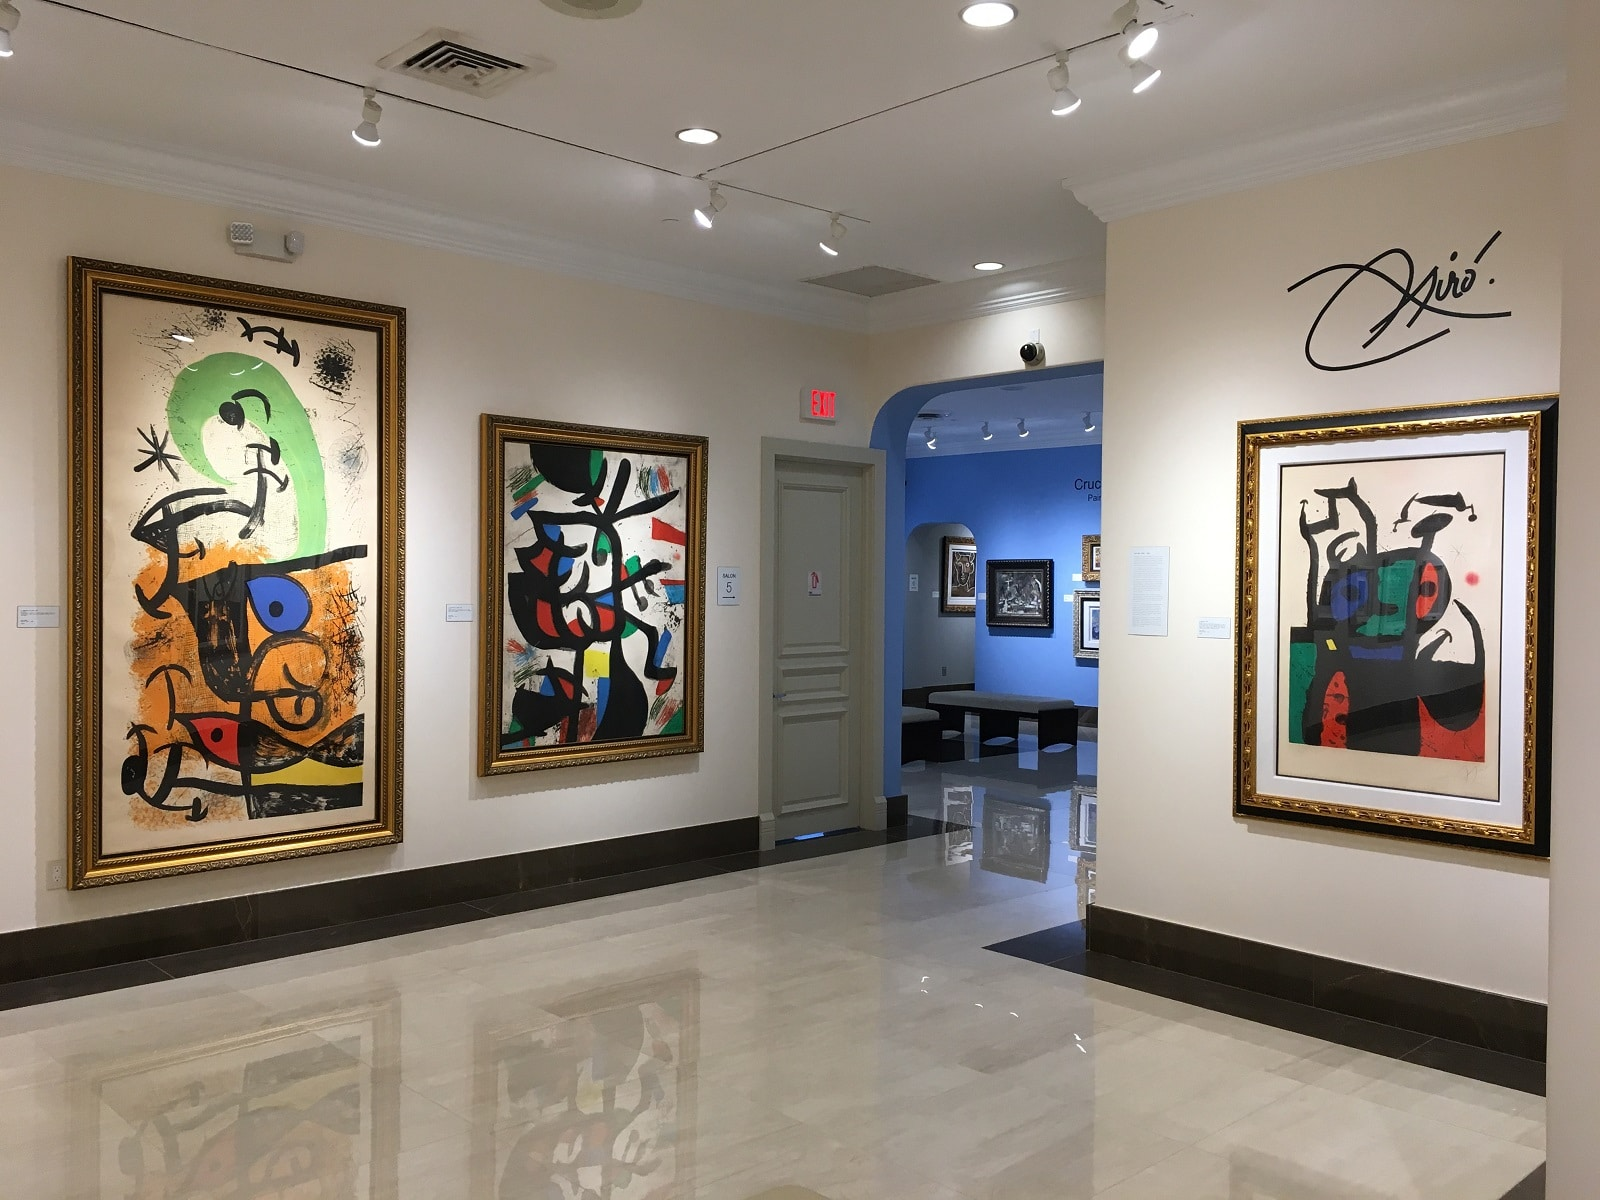 The Joan Miró gallery at Park West Museum.